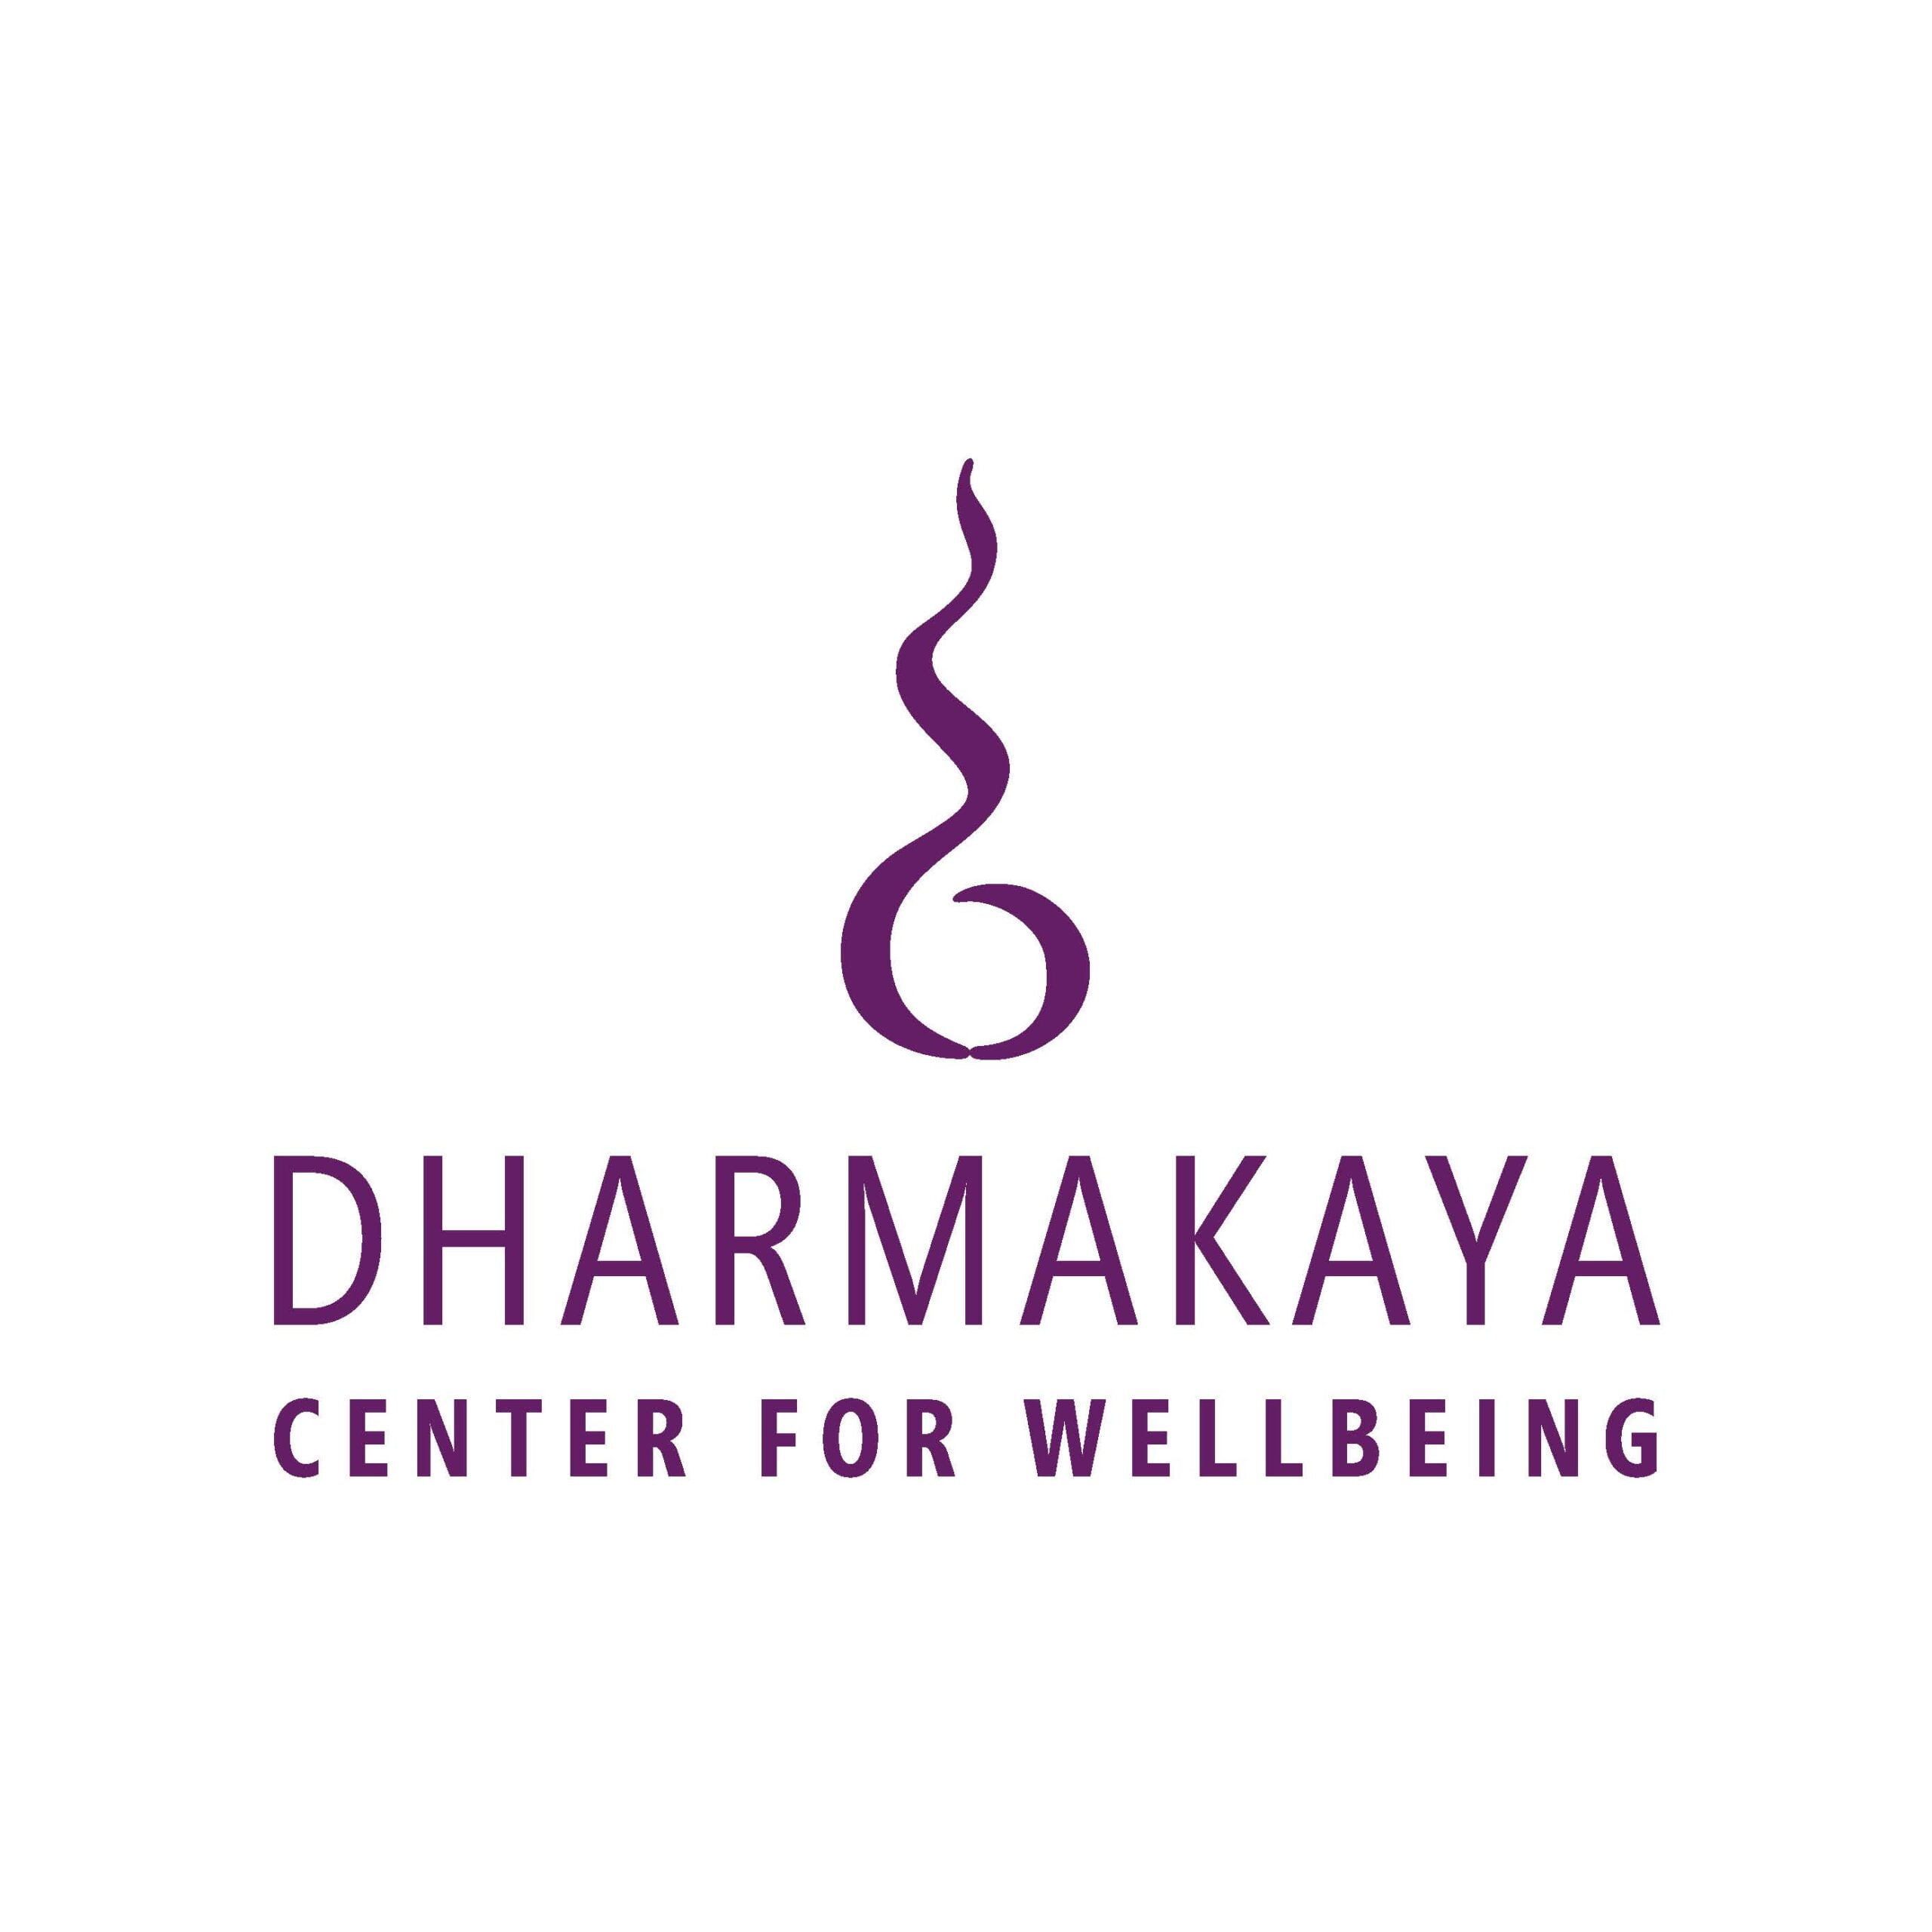 Dharmakaya Center for Wellbeing, NY